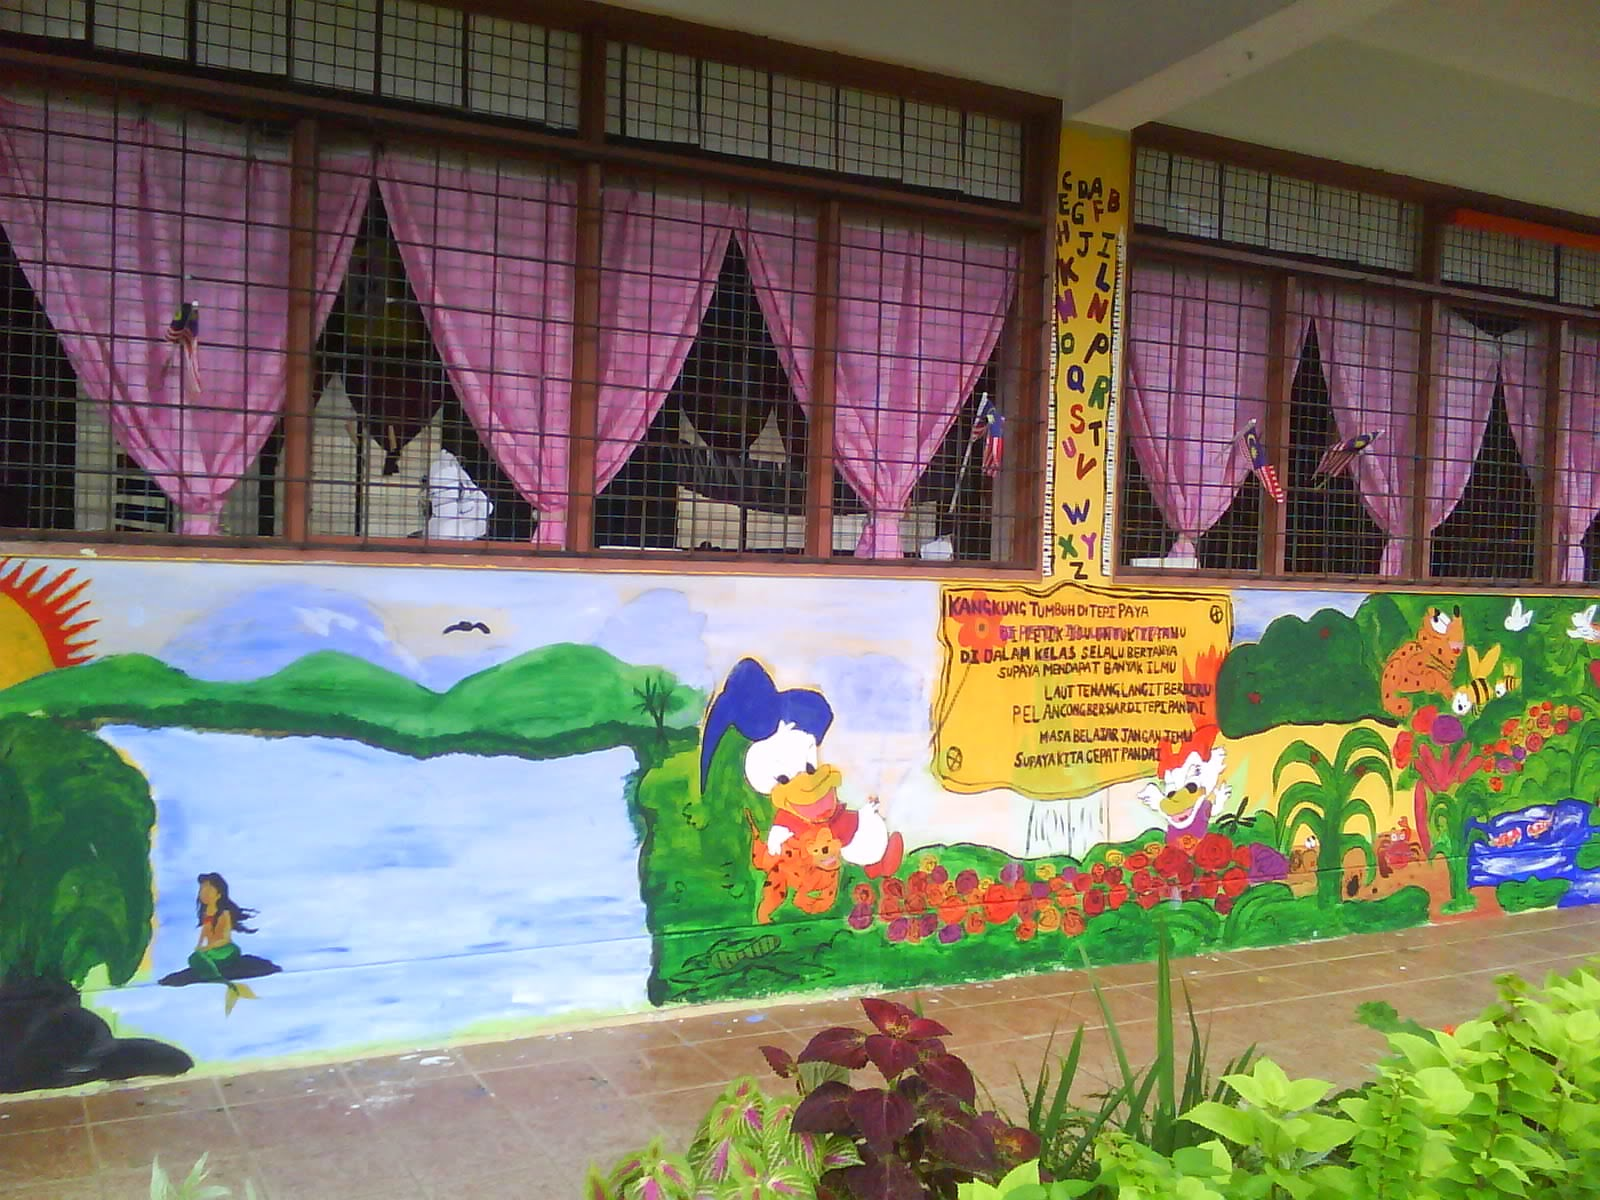 Mural Contoh Lukisan Dinding Mural Mural Contoh Lukisan. Music Decals. Absolutely Lettering. Websites To Print Coupons. High Blood Sugar Signs Of Stroke. Peppa Pig Stickers. New York Times Logo. Woven Stickers. Skin Change Signs